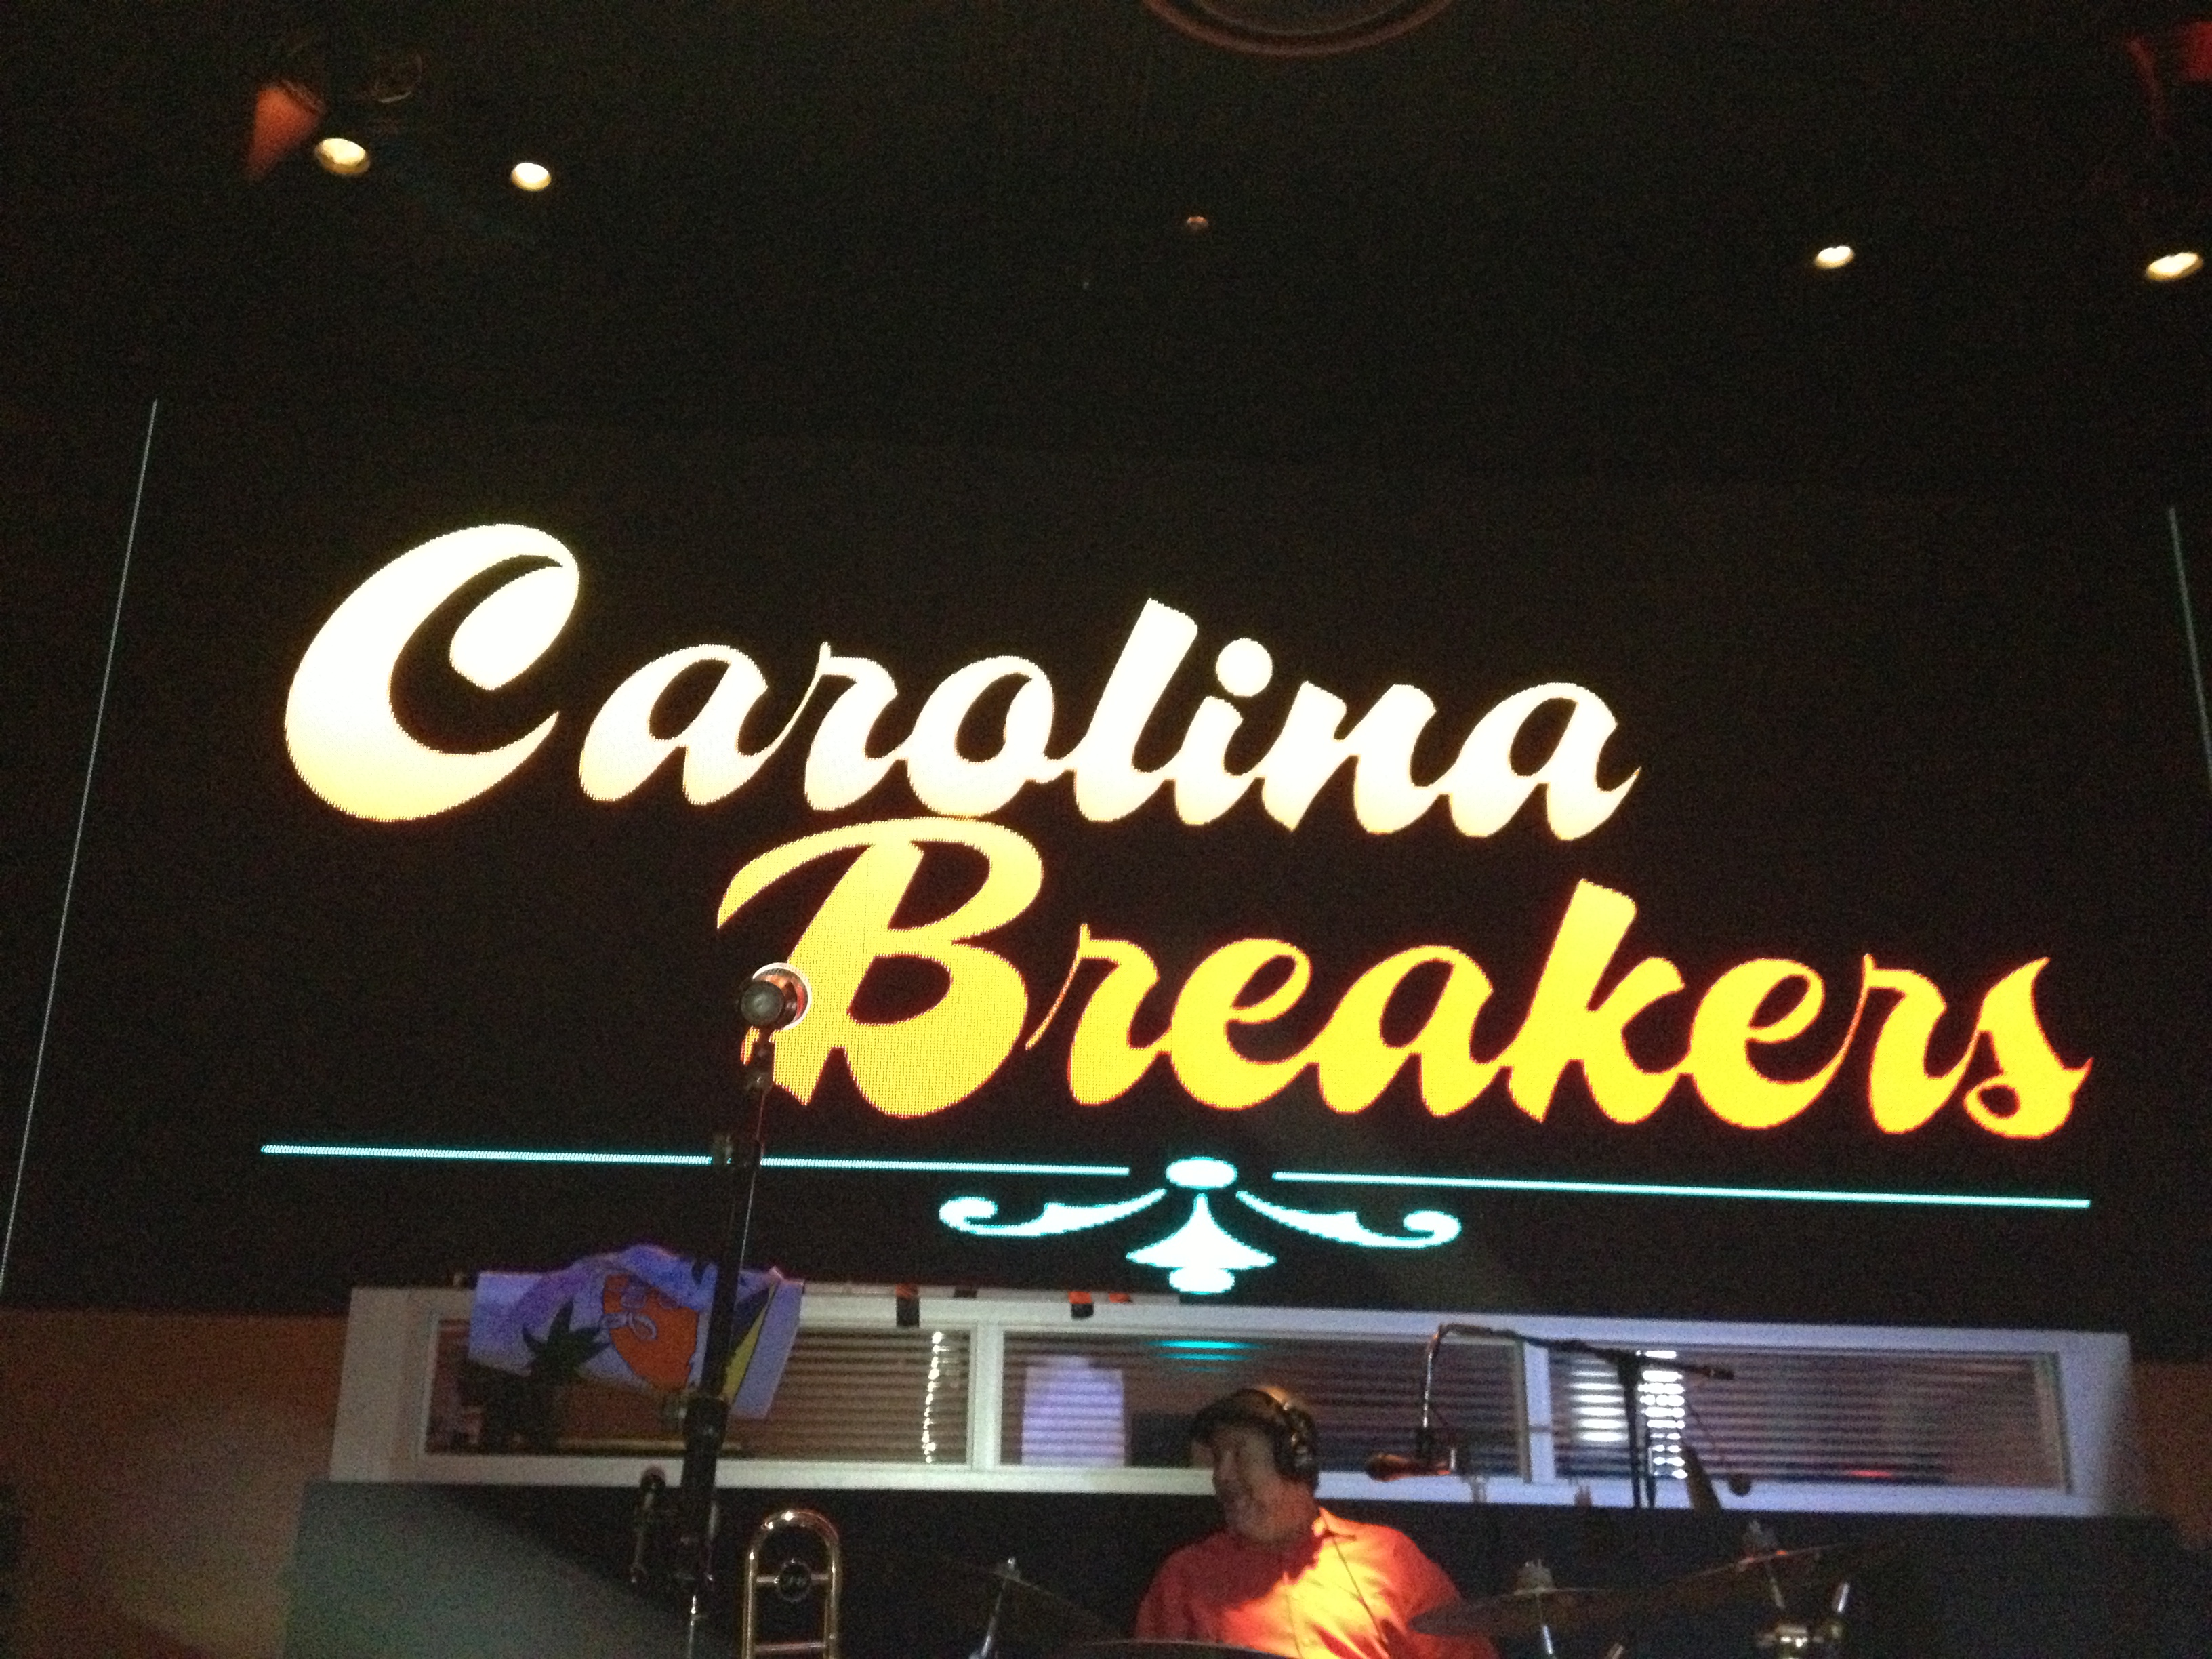 The Carolina Breakers